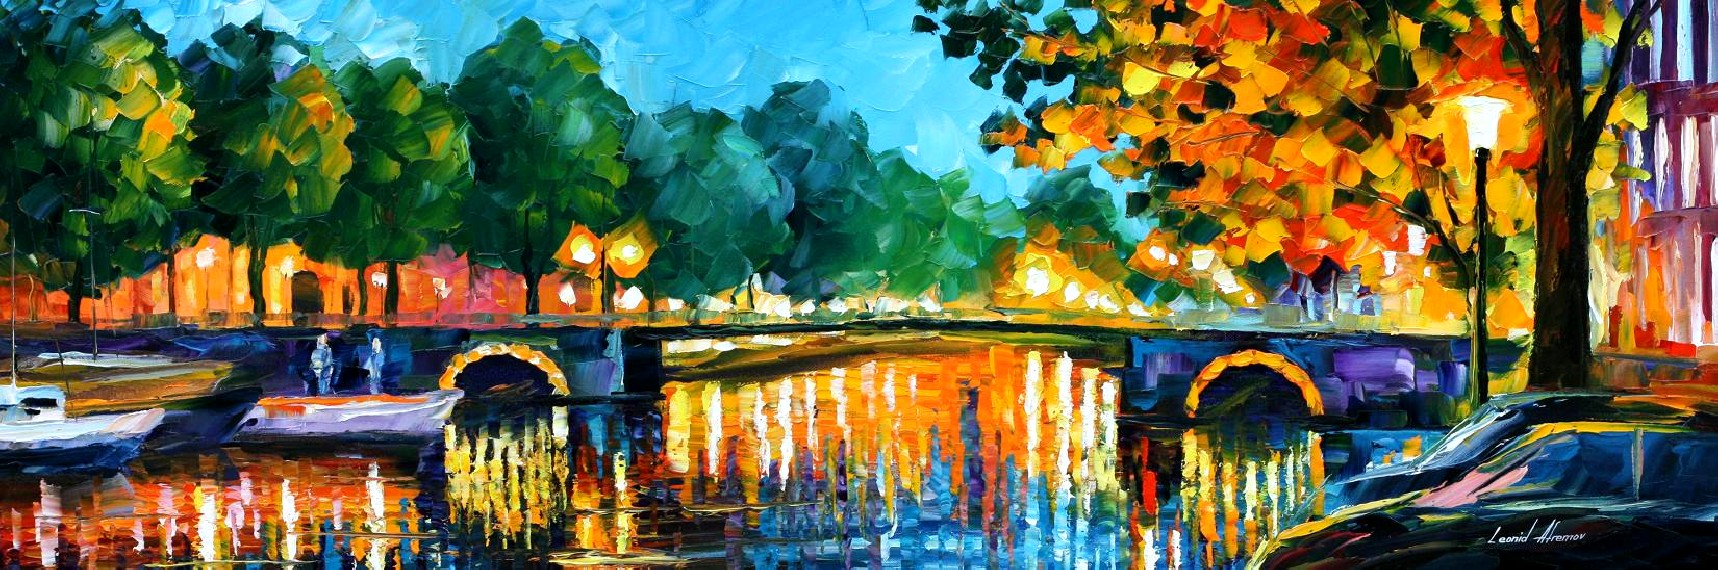 Modern impressionism palette knife oil painting City073